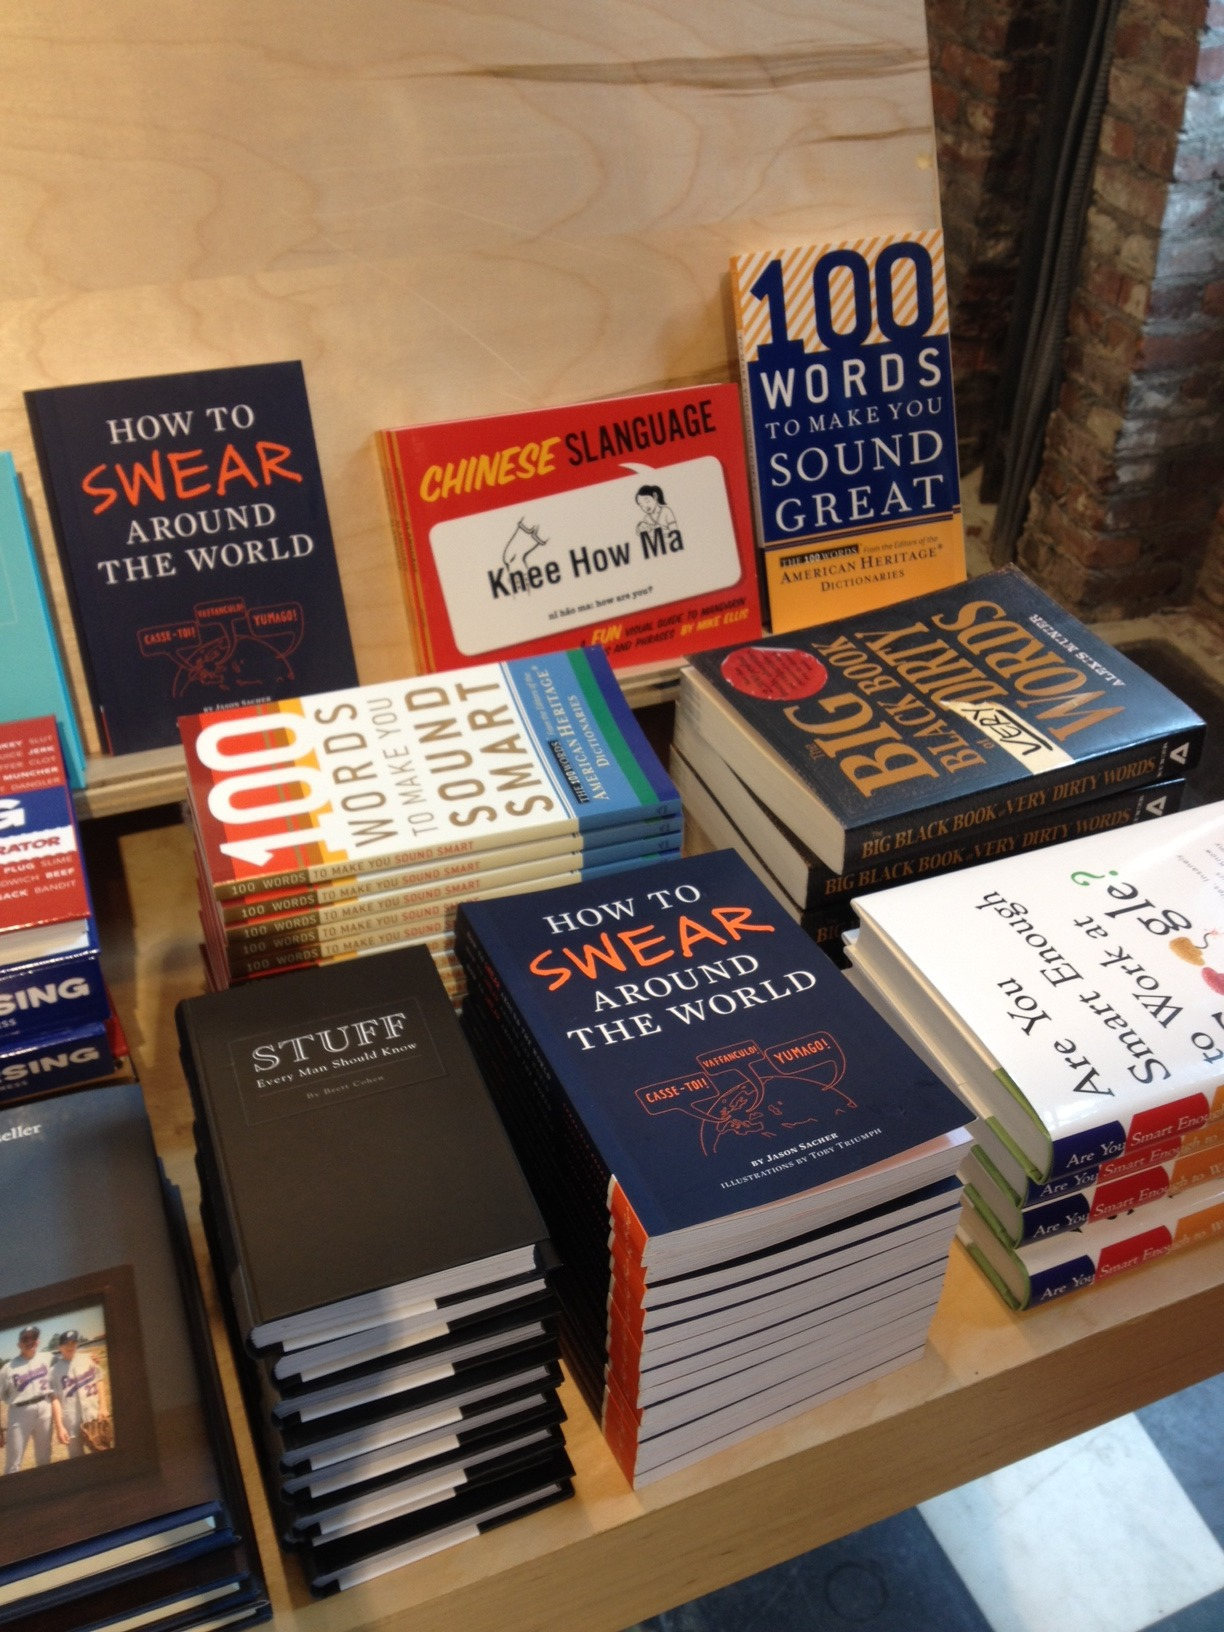 I wrote this book. There it is on the table at Urban Outfitters.